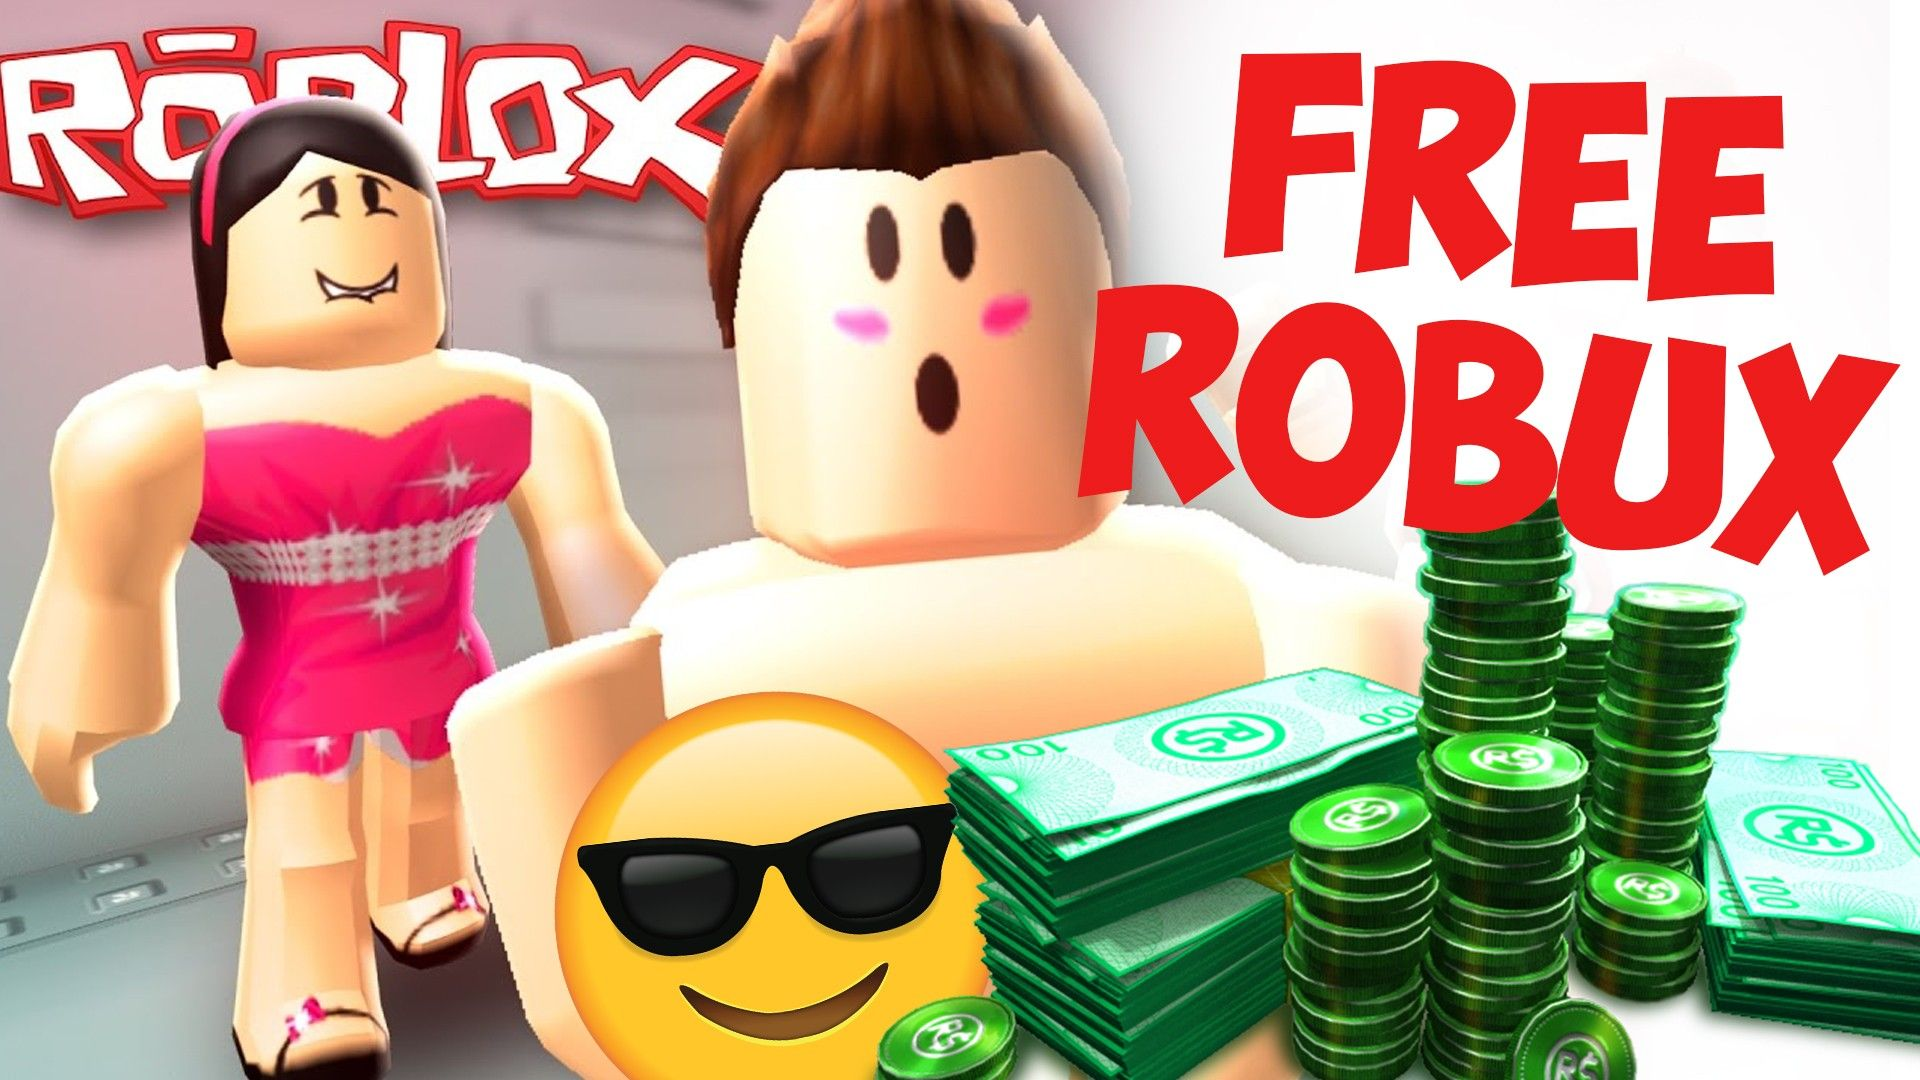 Get free robux now with roblox generator online with